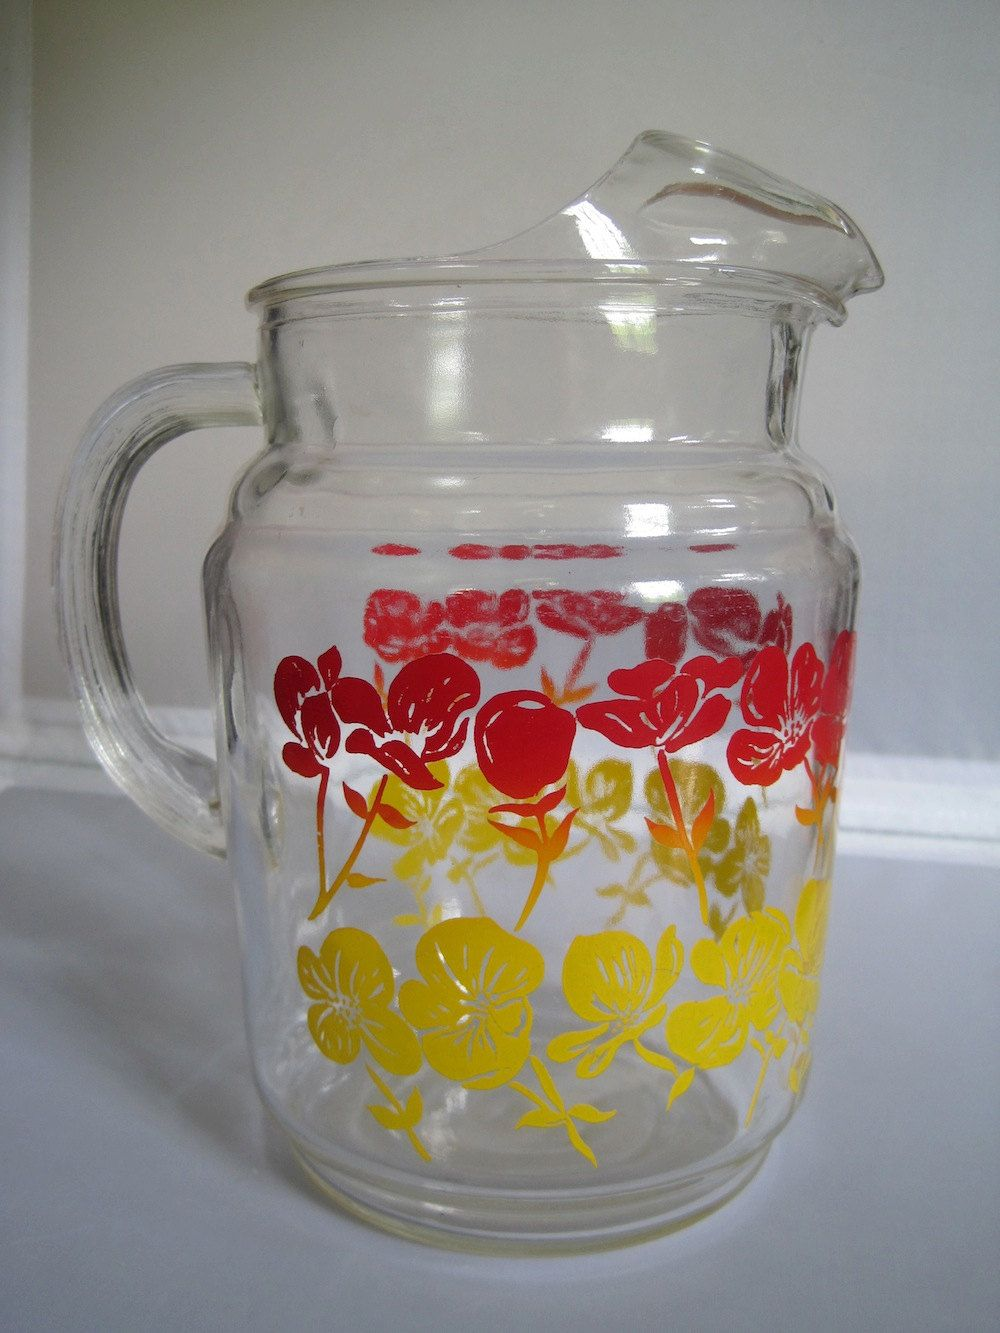 Vintage Glass Pitcher My Gosh Who Didn T Have Kool Aid Out Of A Pitcher Like This Vintage Glass Pitchers Retro Glassware Vintage Dishes